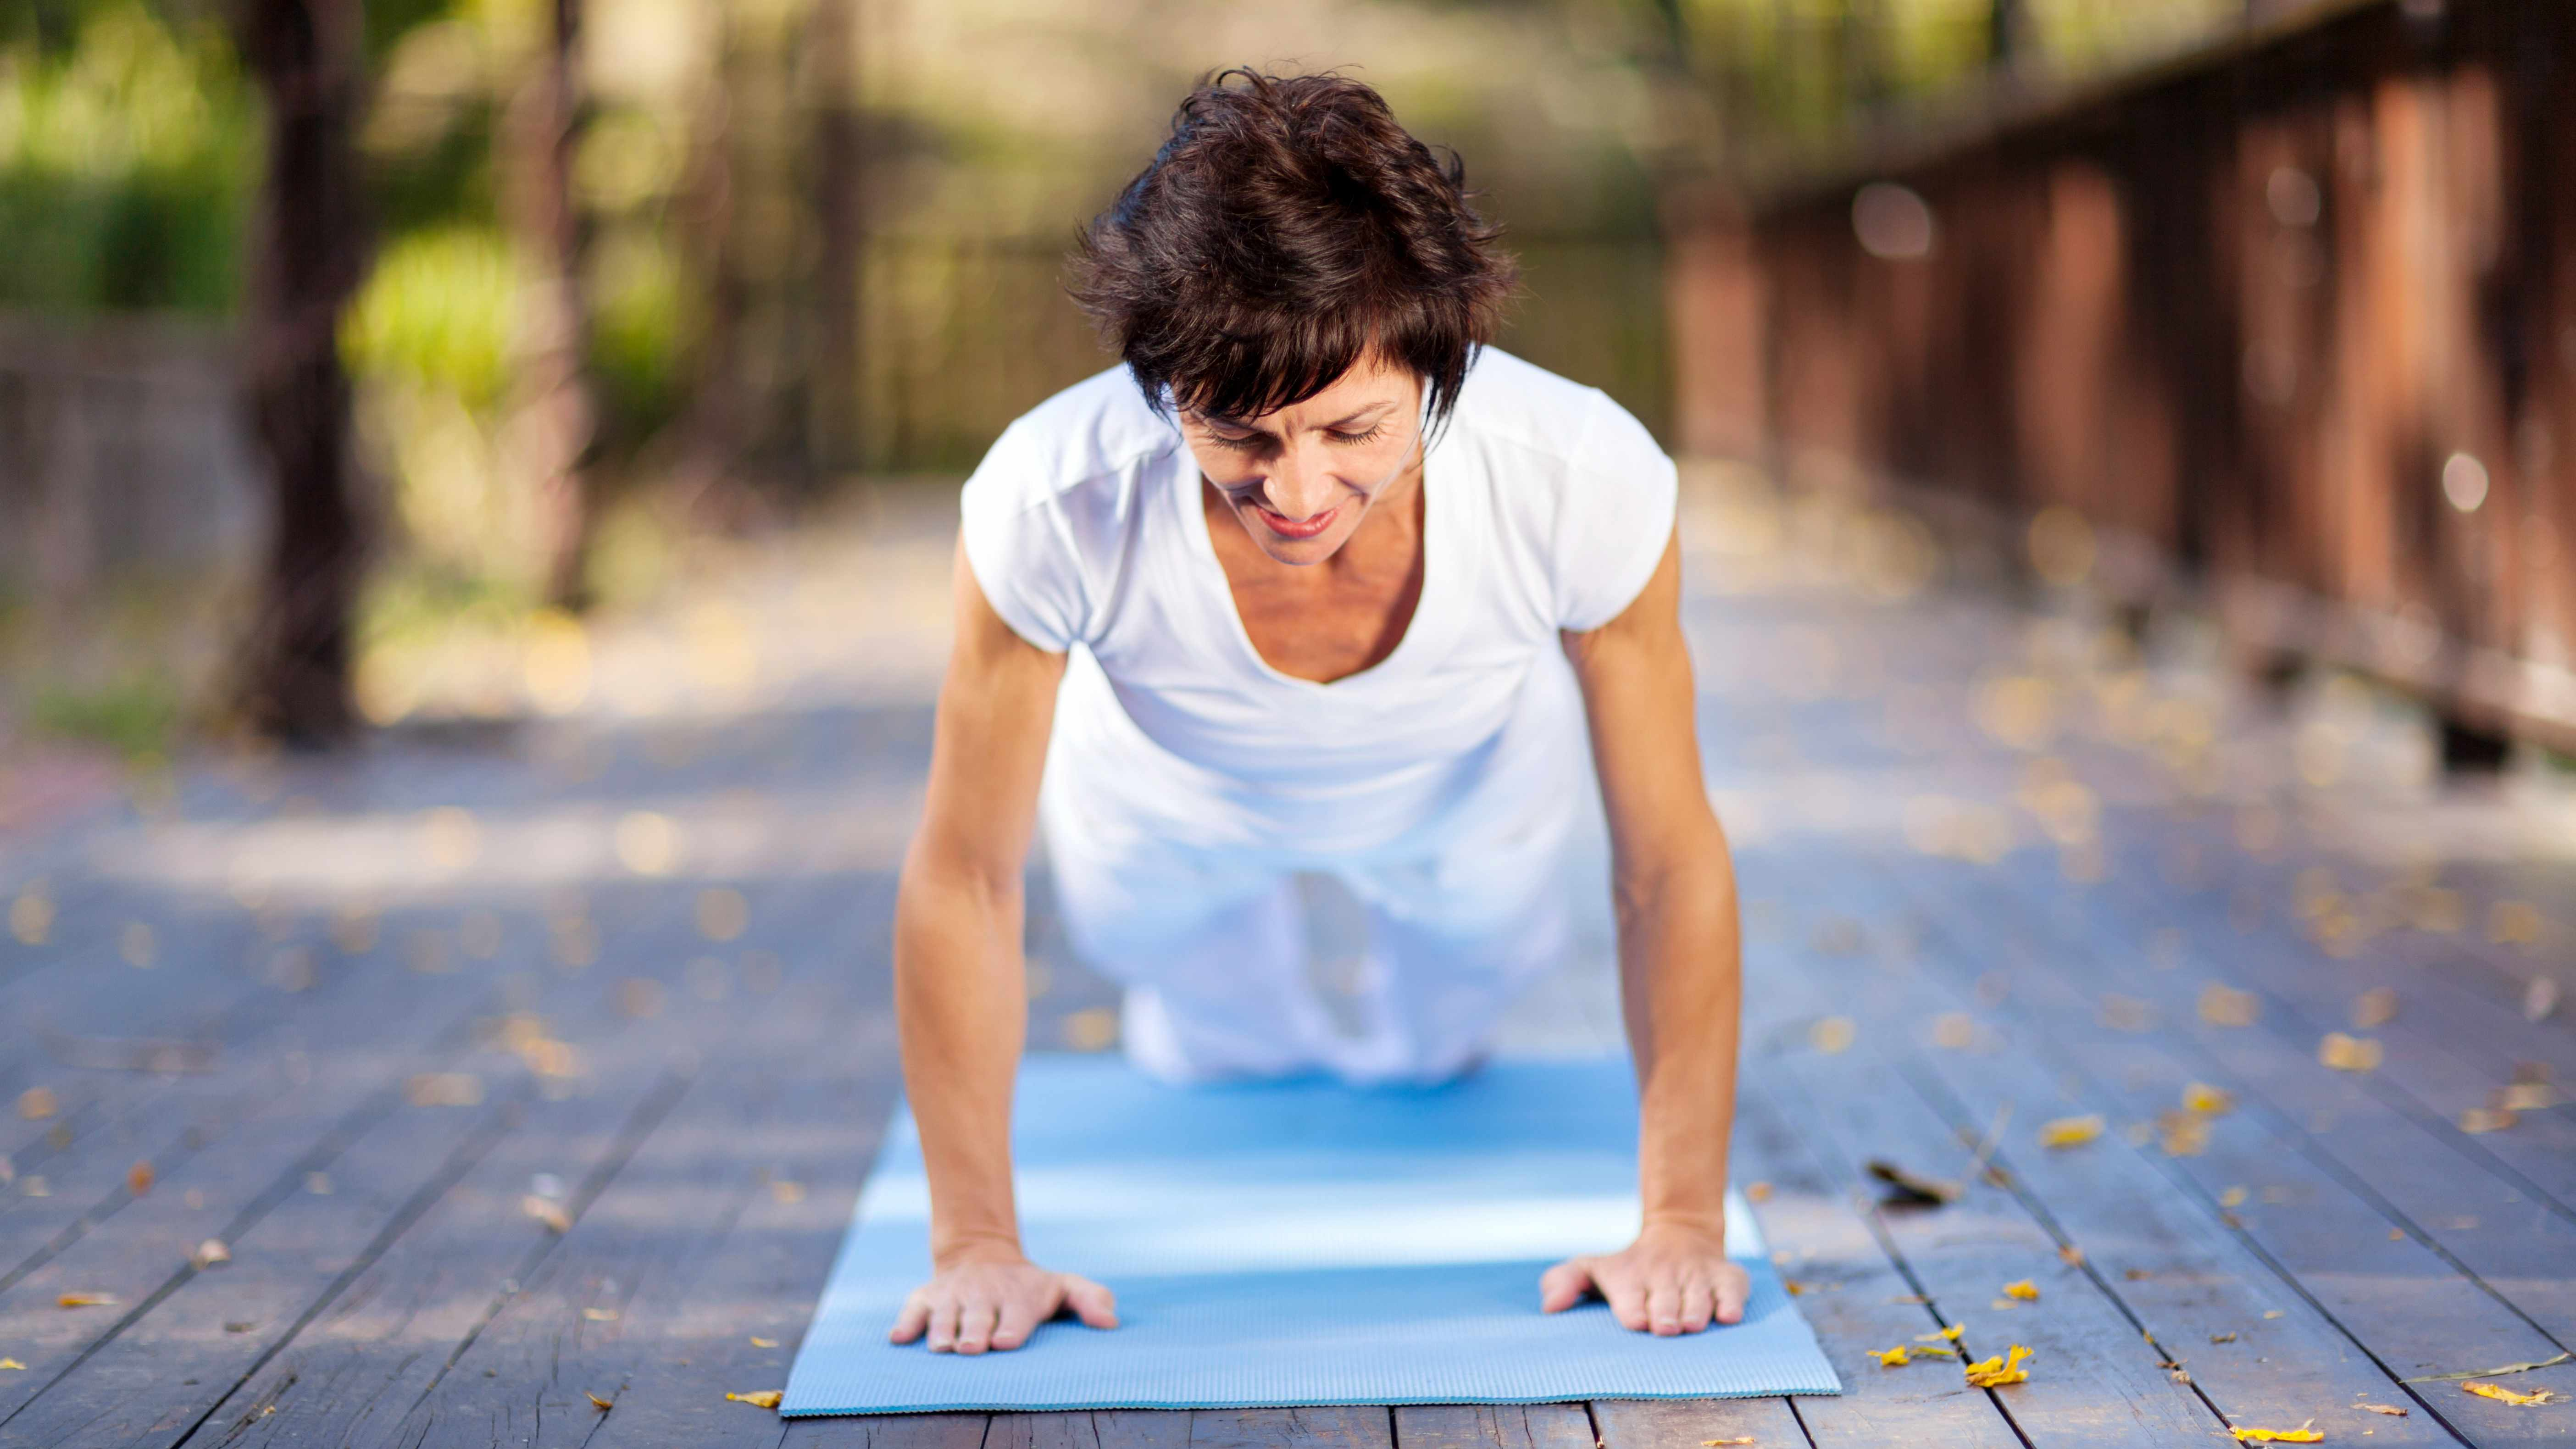 a middle-aged woman on a yoga mat doing an exercise, stretching maybe doing a push-up